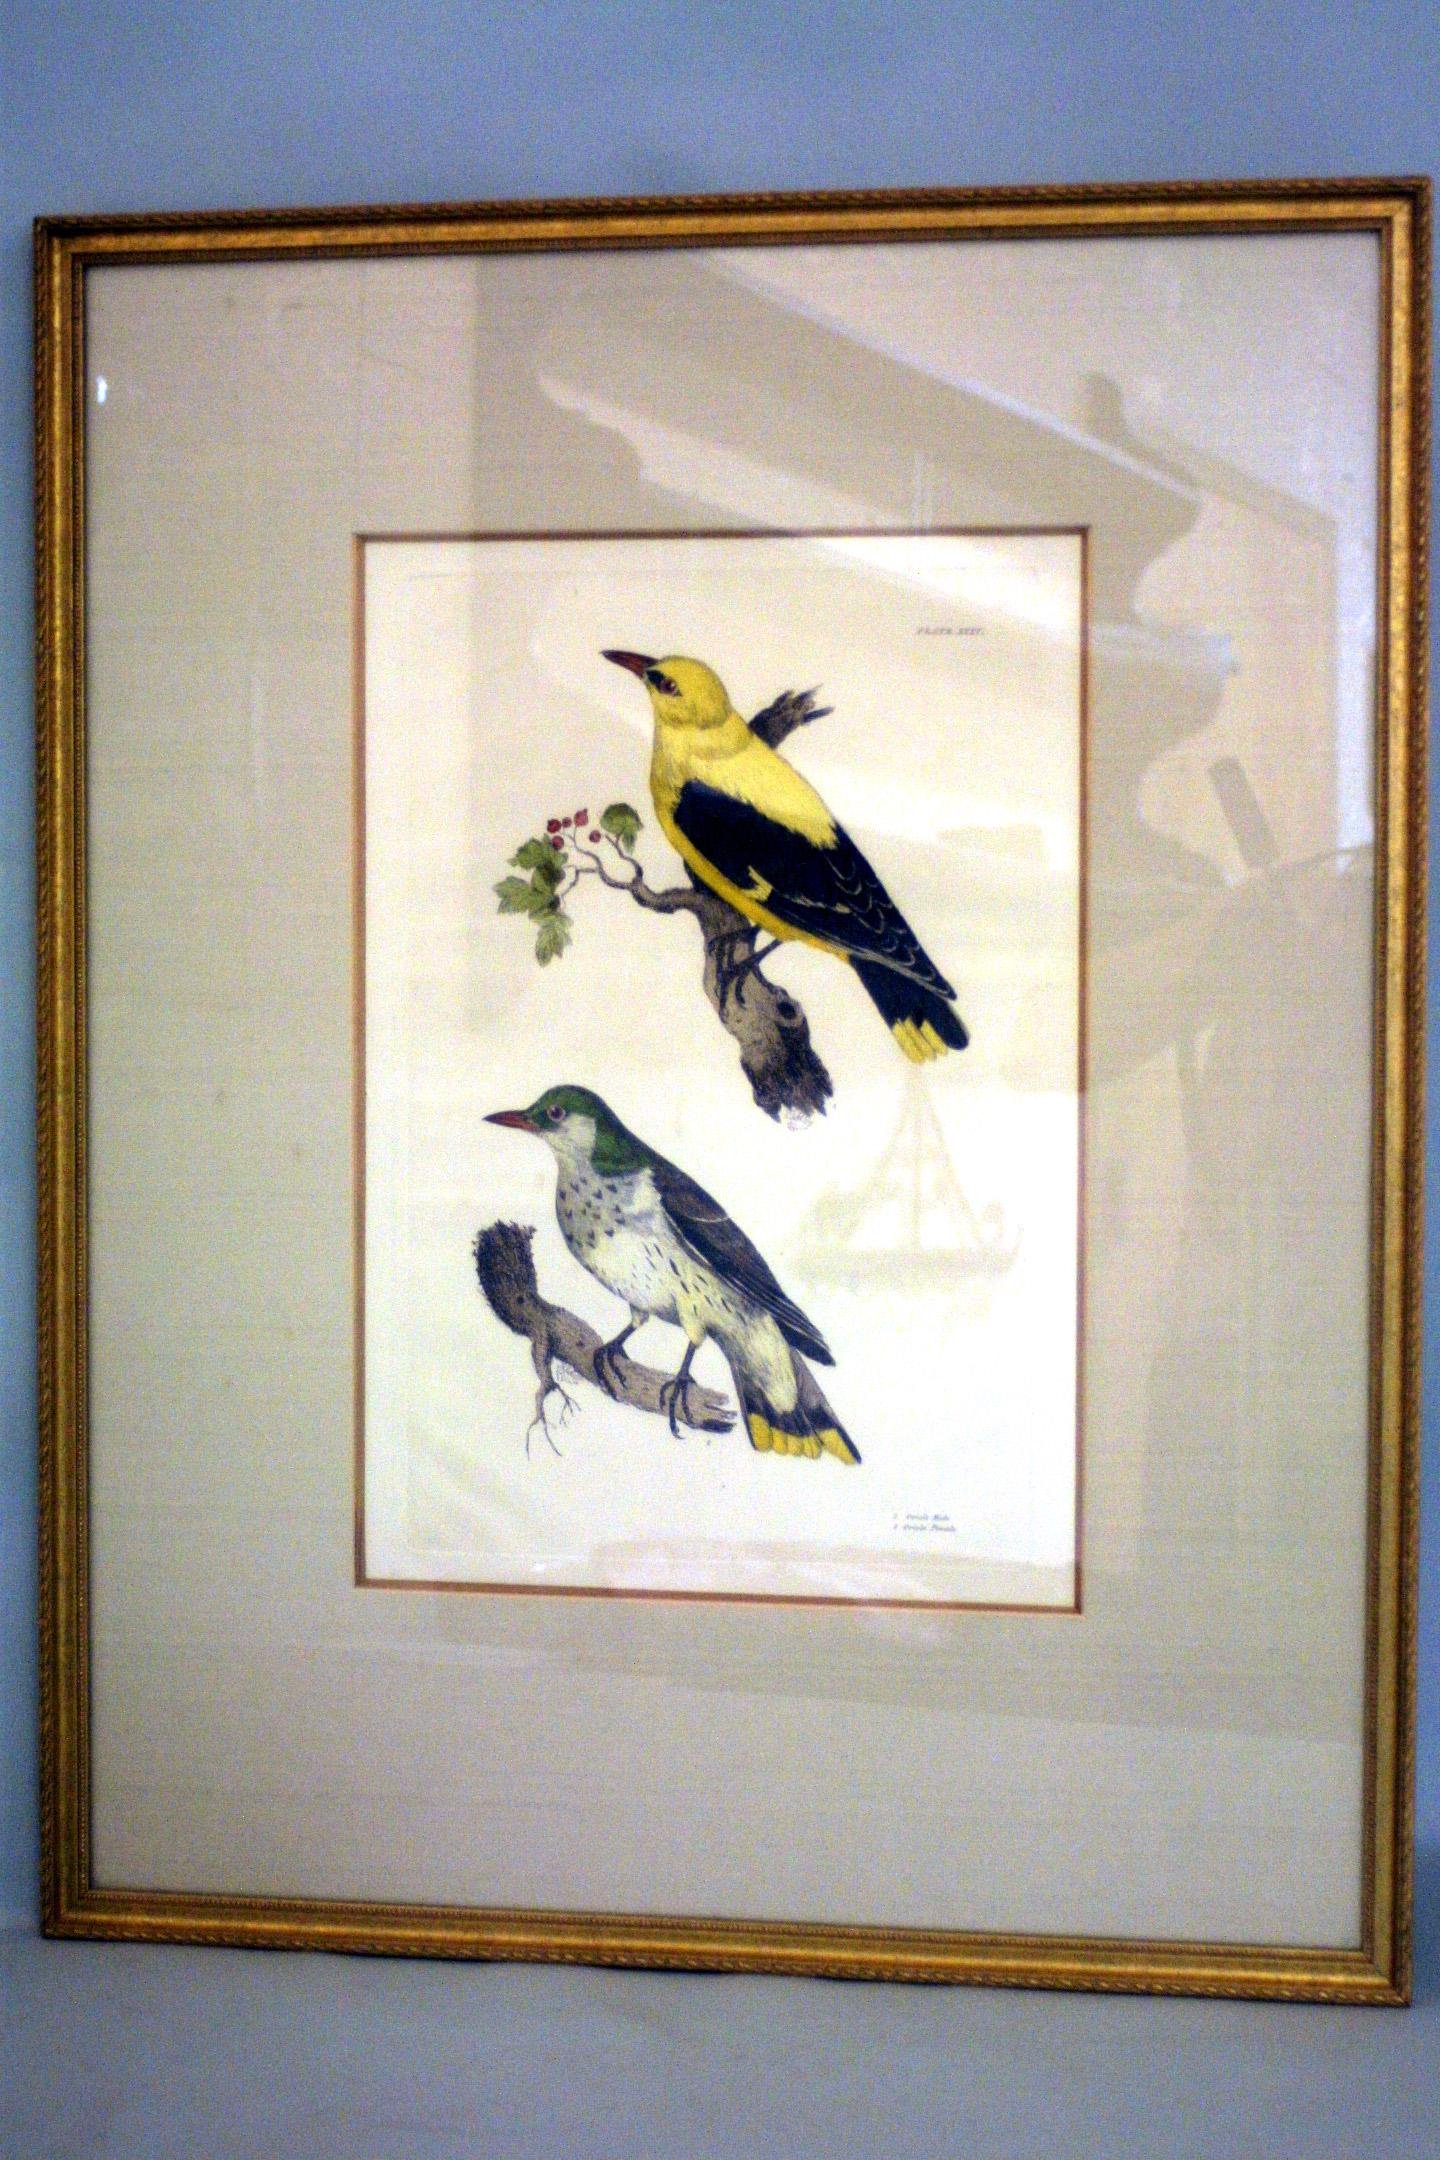 A pair of framed bird prints by Prideaux John Selby